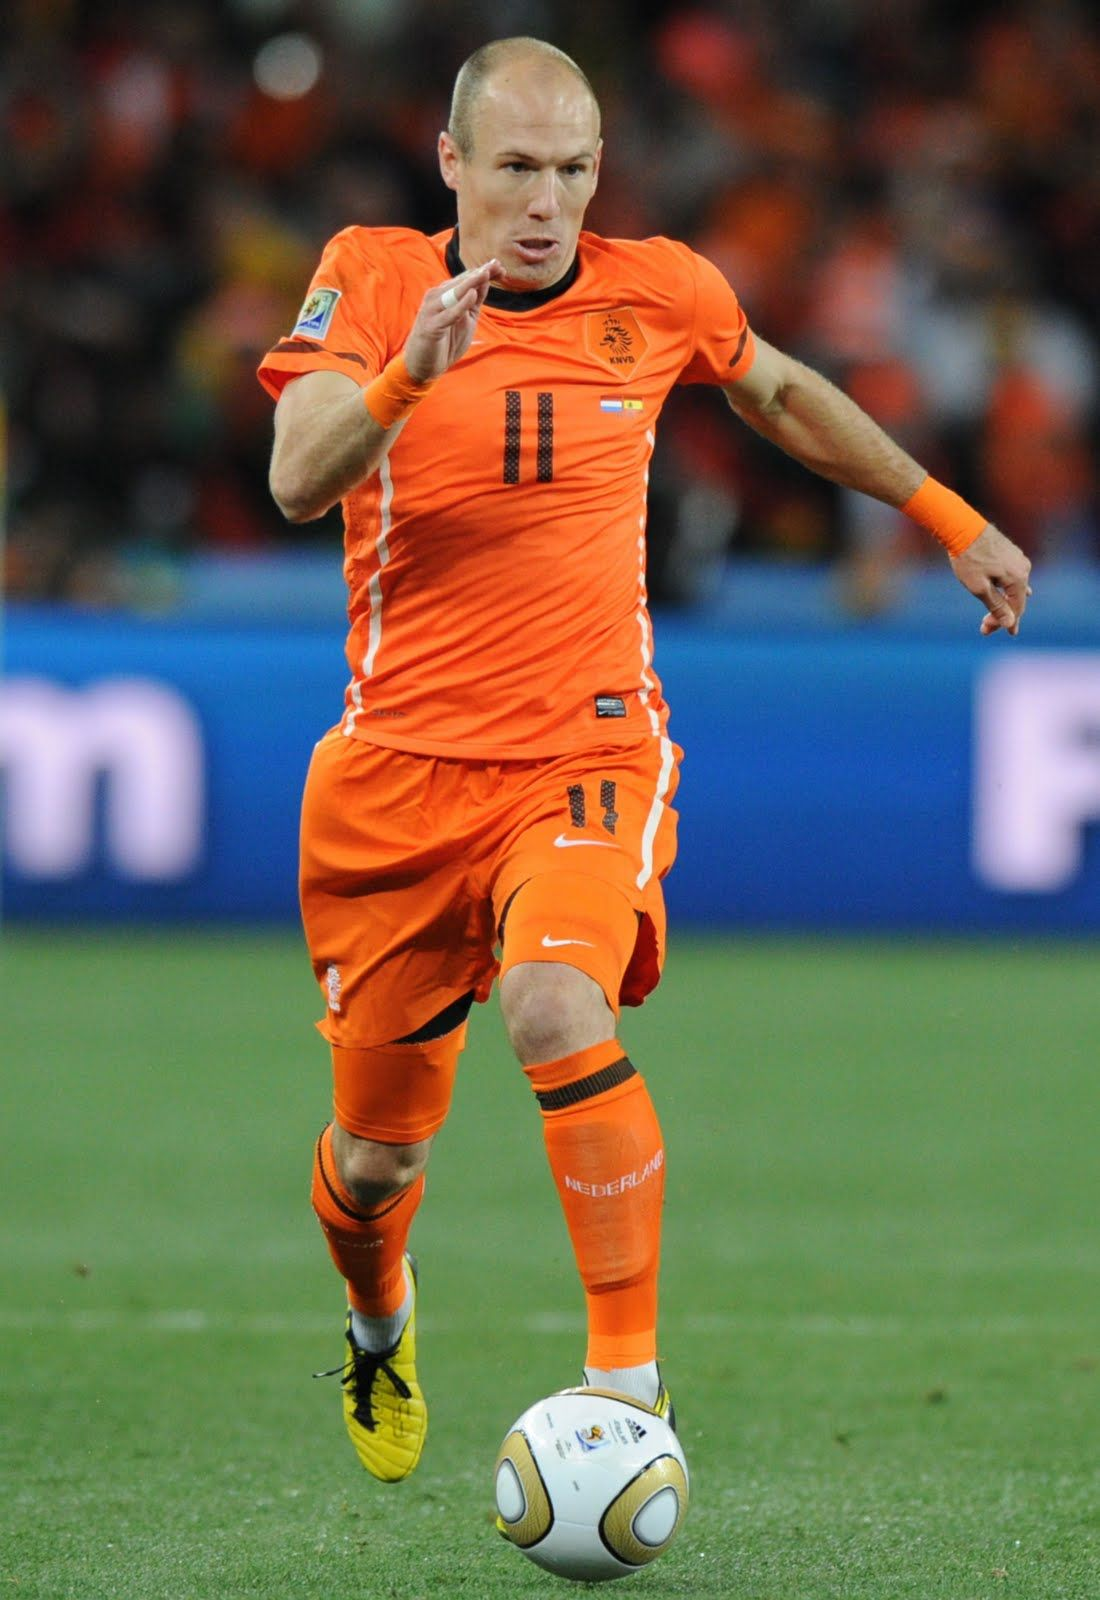 The hottest players world cup barzil 2014 robben netherlands the hottest players world cup barzil 2014 robben netherlands best football player voltagebd Gallery